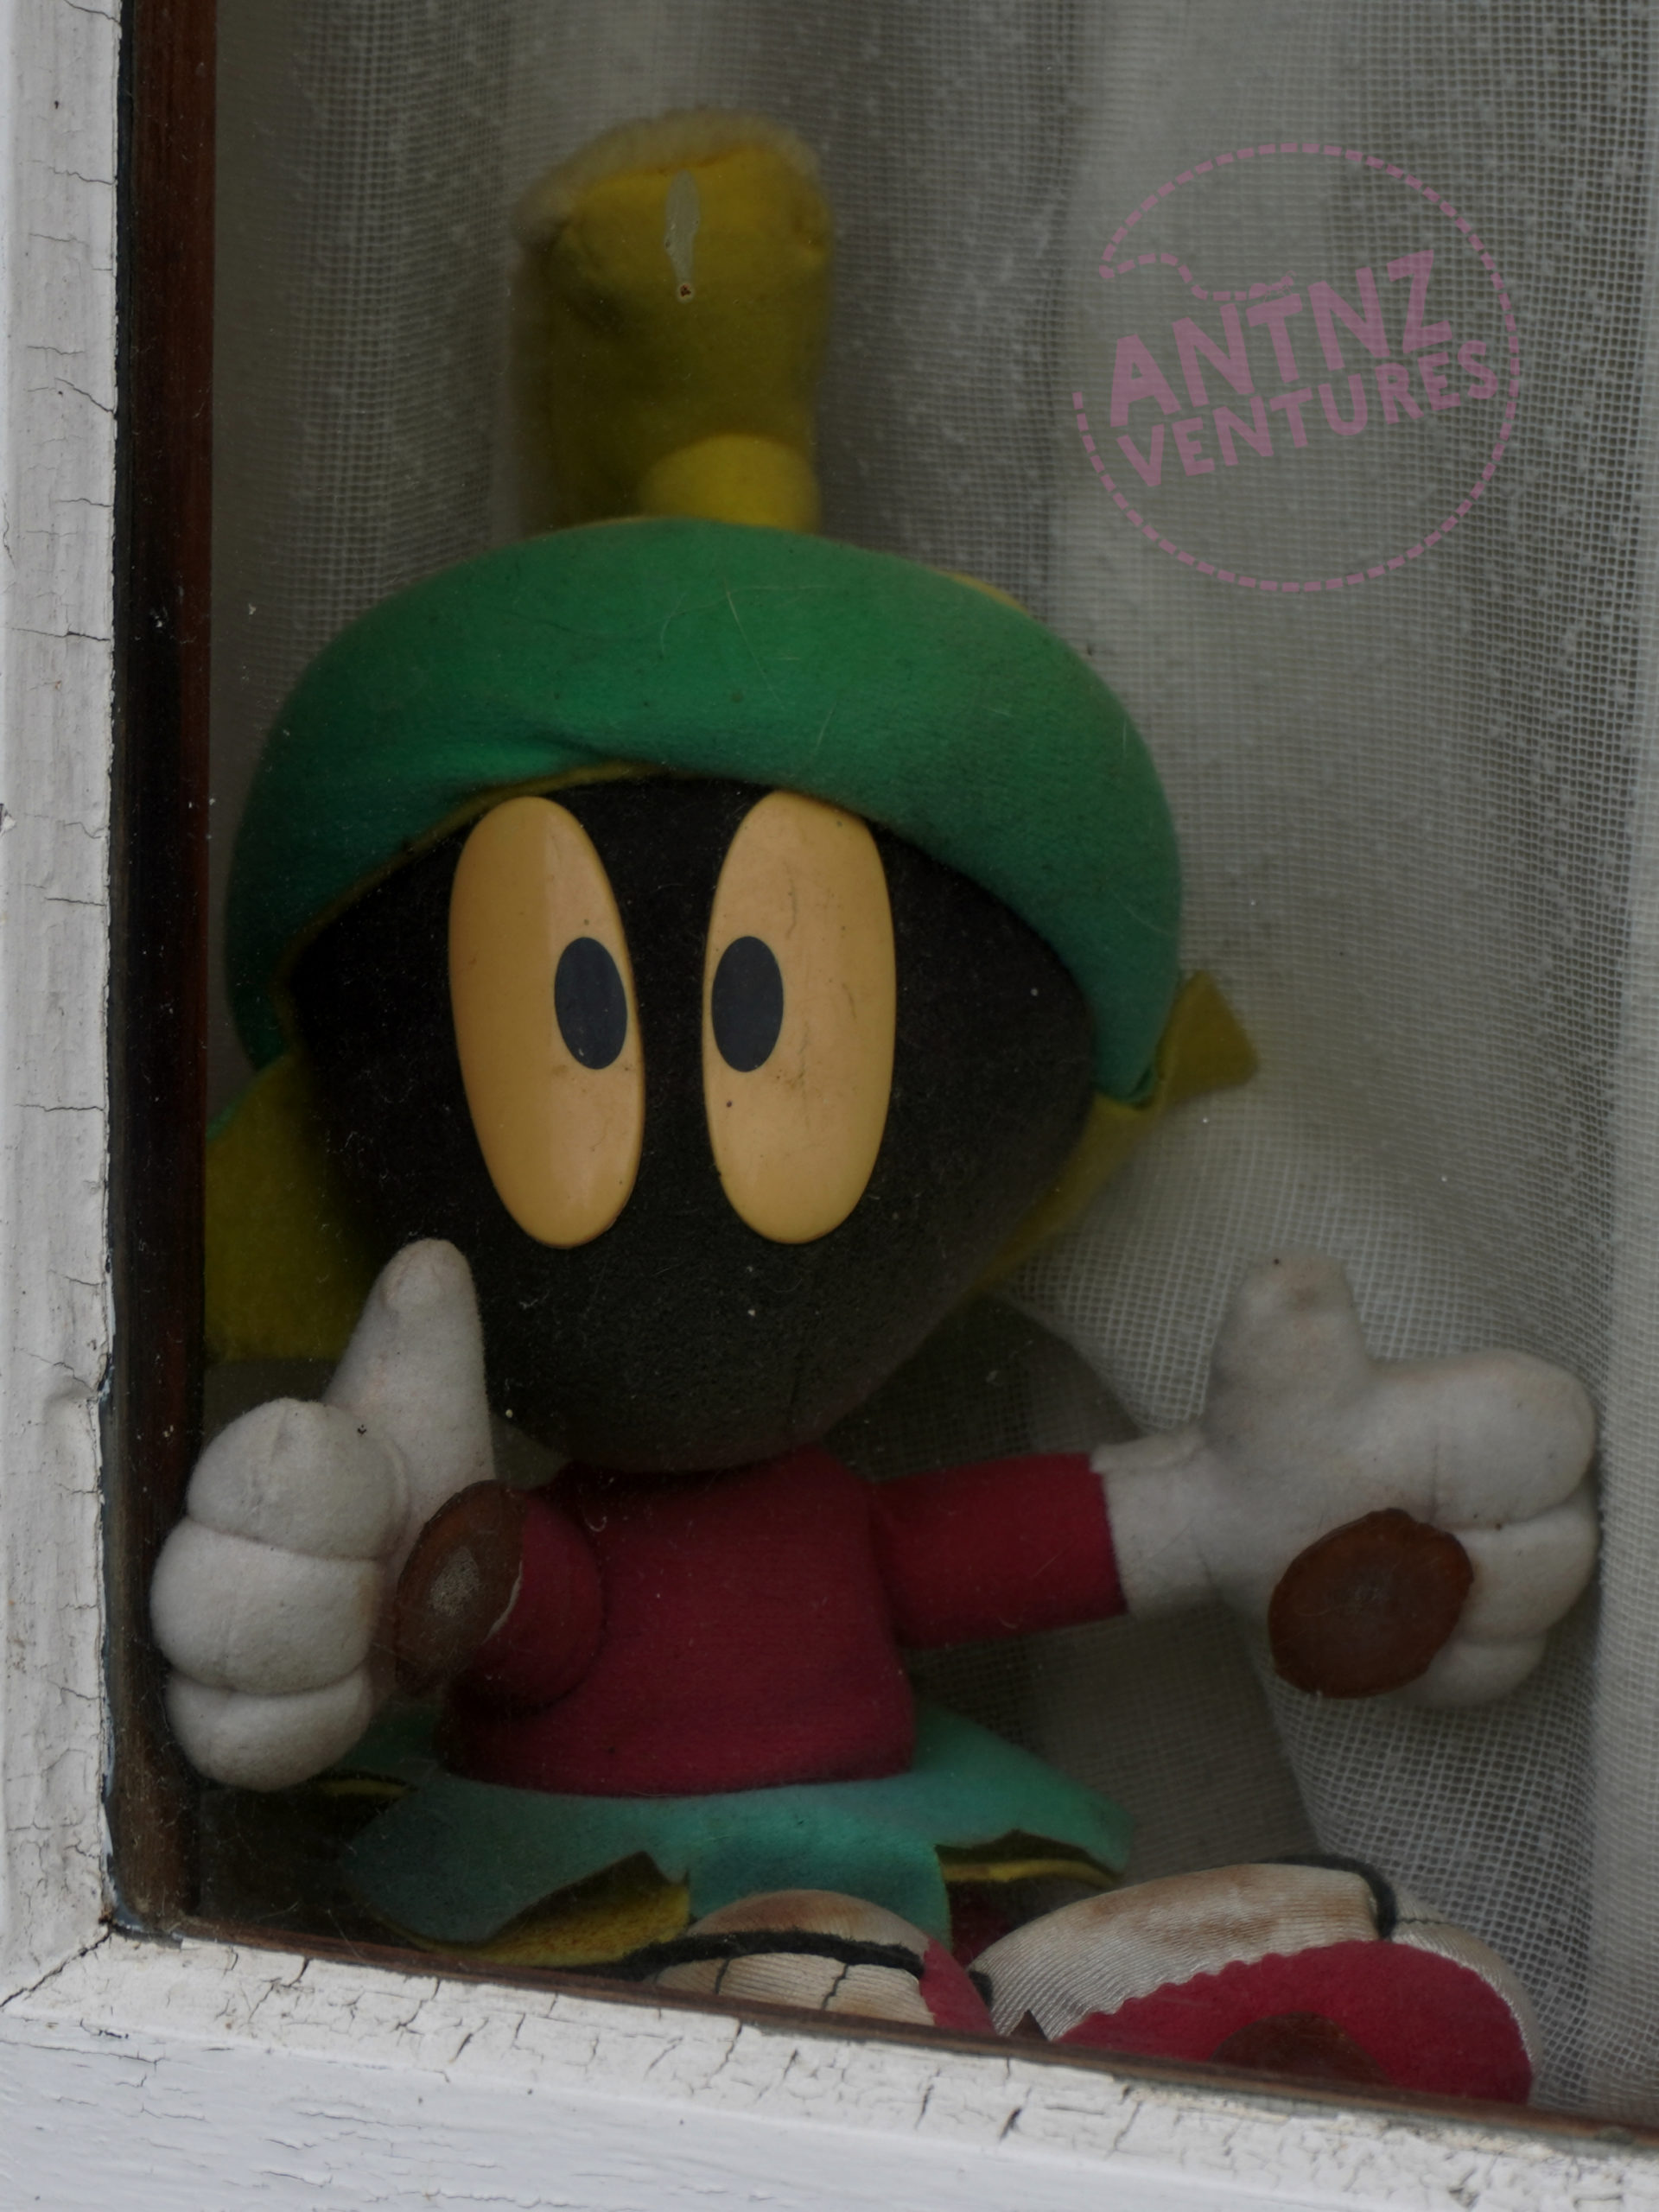 A stuffed Marvin the Martian. Marvin is sitting on a windowsill, behind glass but in front of a net curtain.